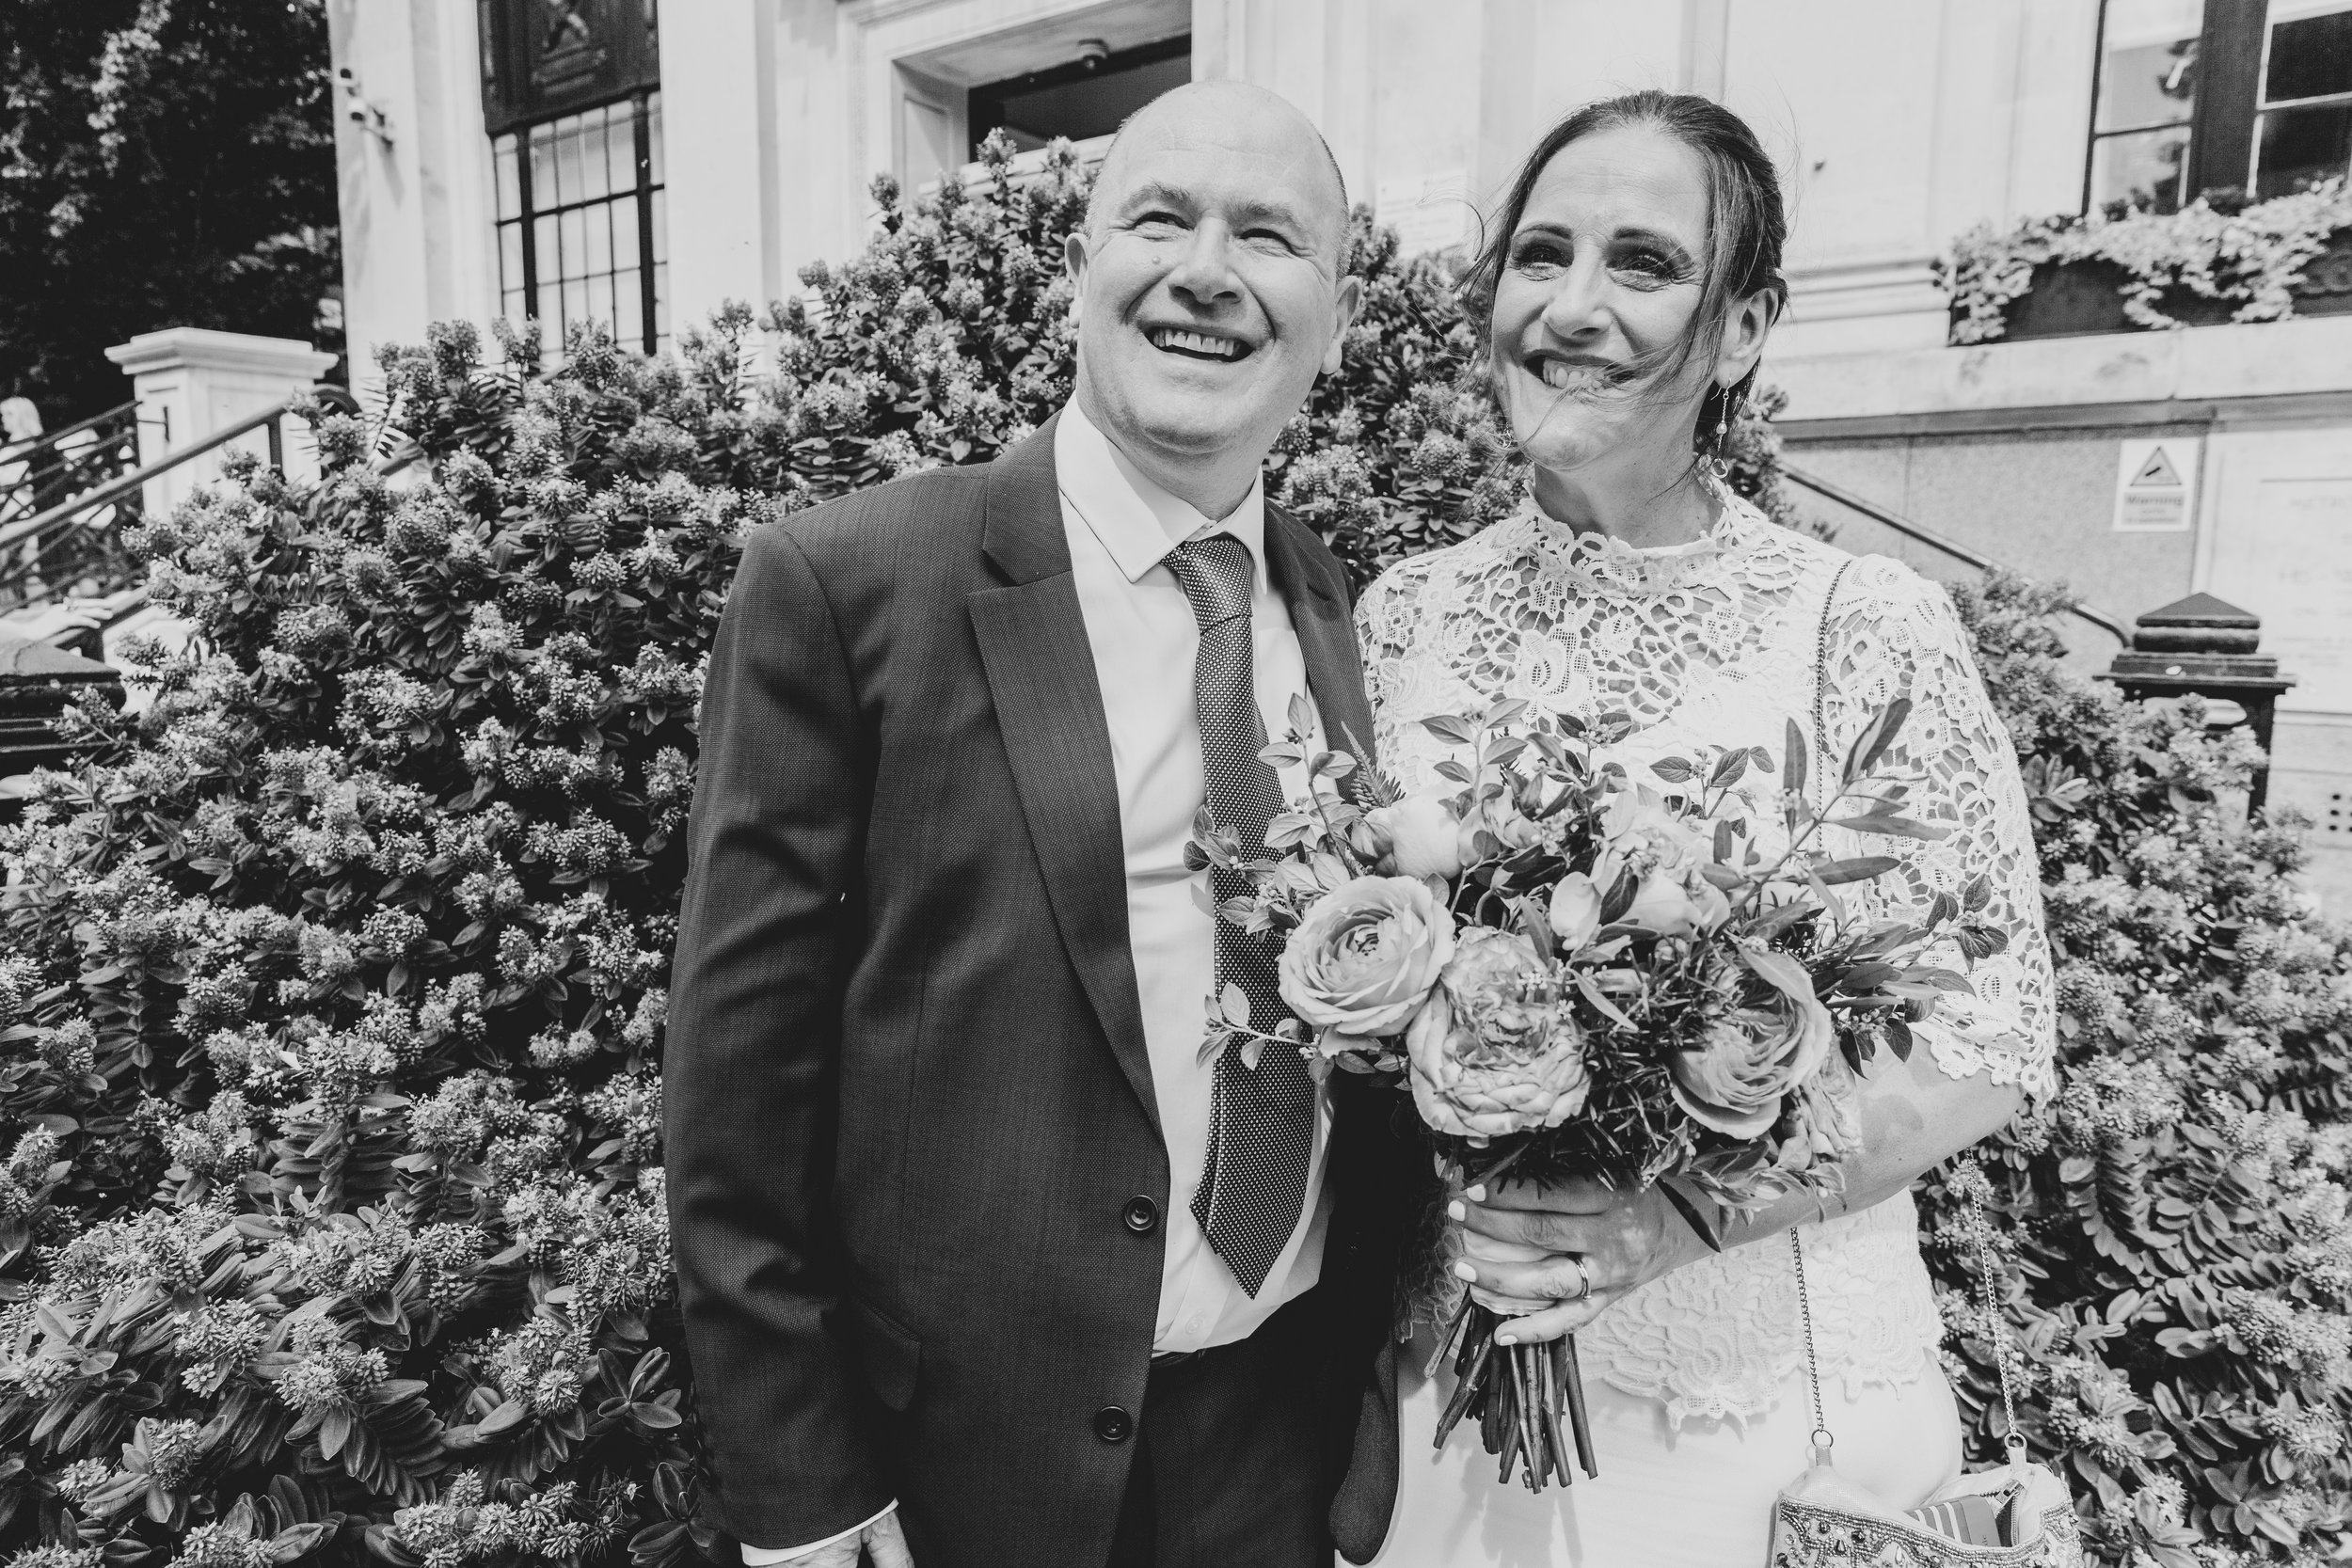 Tamsin & Paul - From our very first meeting it was fantastic working with Sam, she did an amazing job at our wedding by capturing what a happy day (and evening) it was. Loved the little presentation box and it was great fun re-living the memories - would highly recommend. Thank you team Lase!